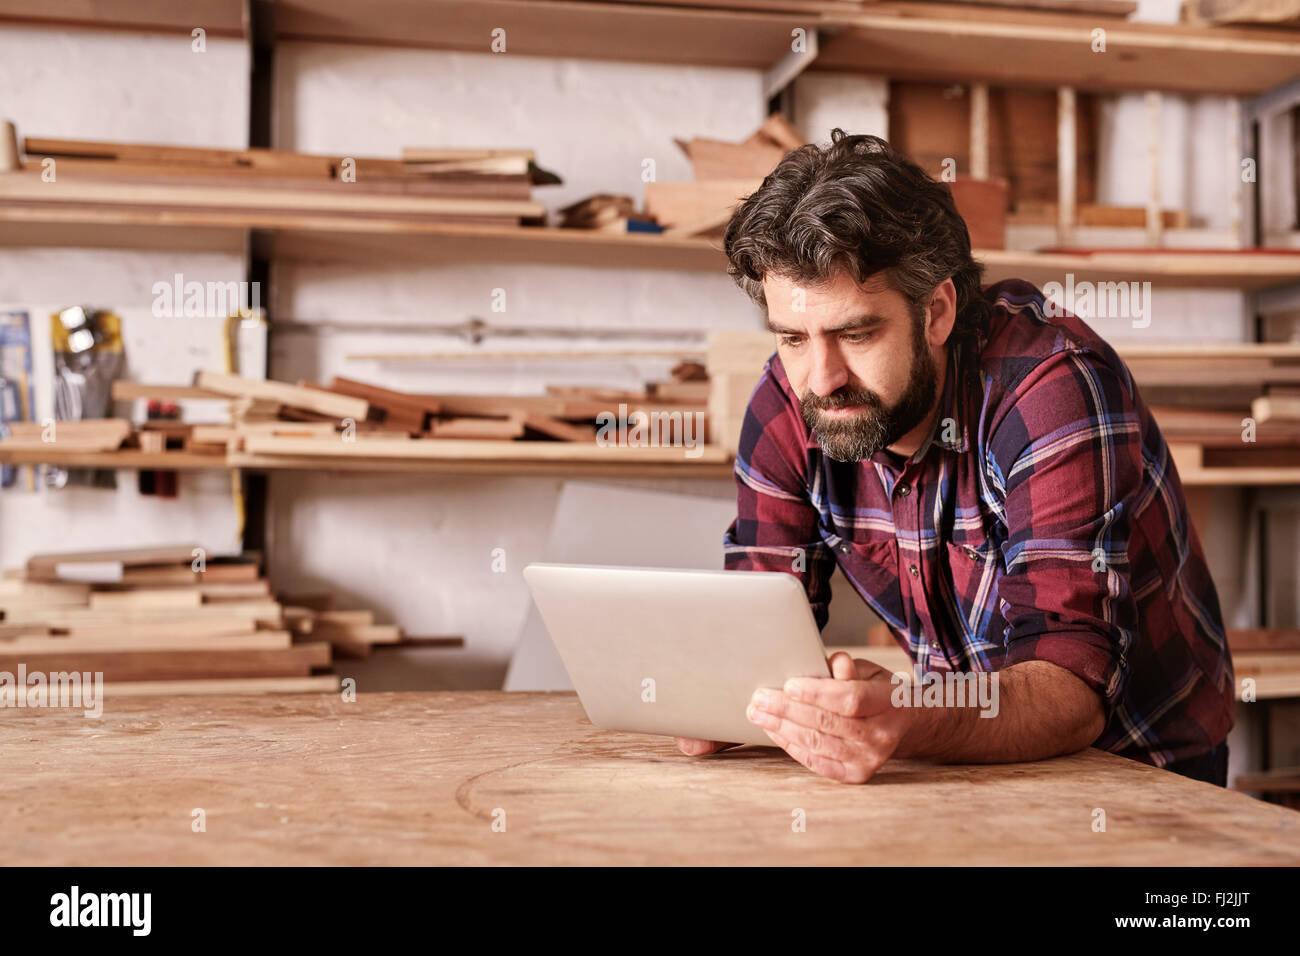 Woodwork craftsman in his studio using a digital tablet - Stock Image